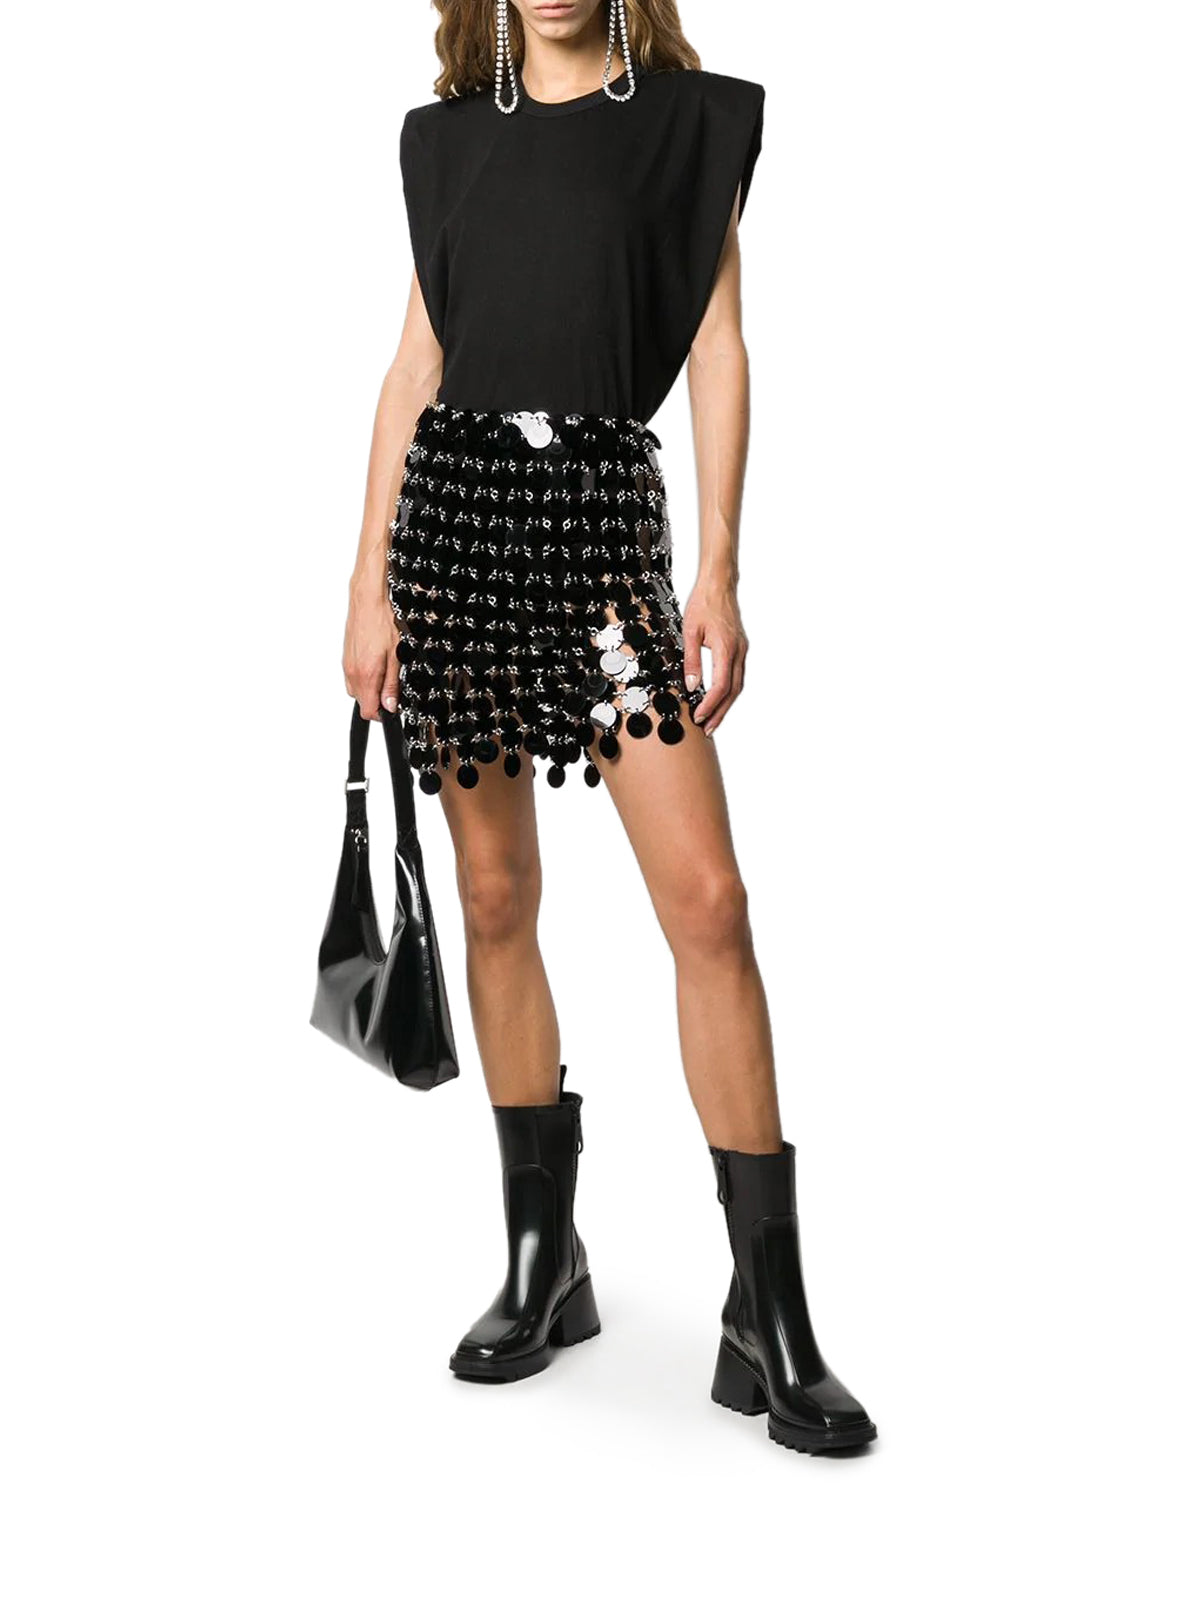 Miniskirt with sequins